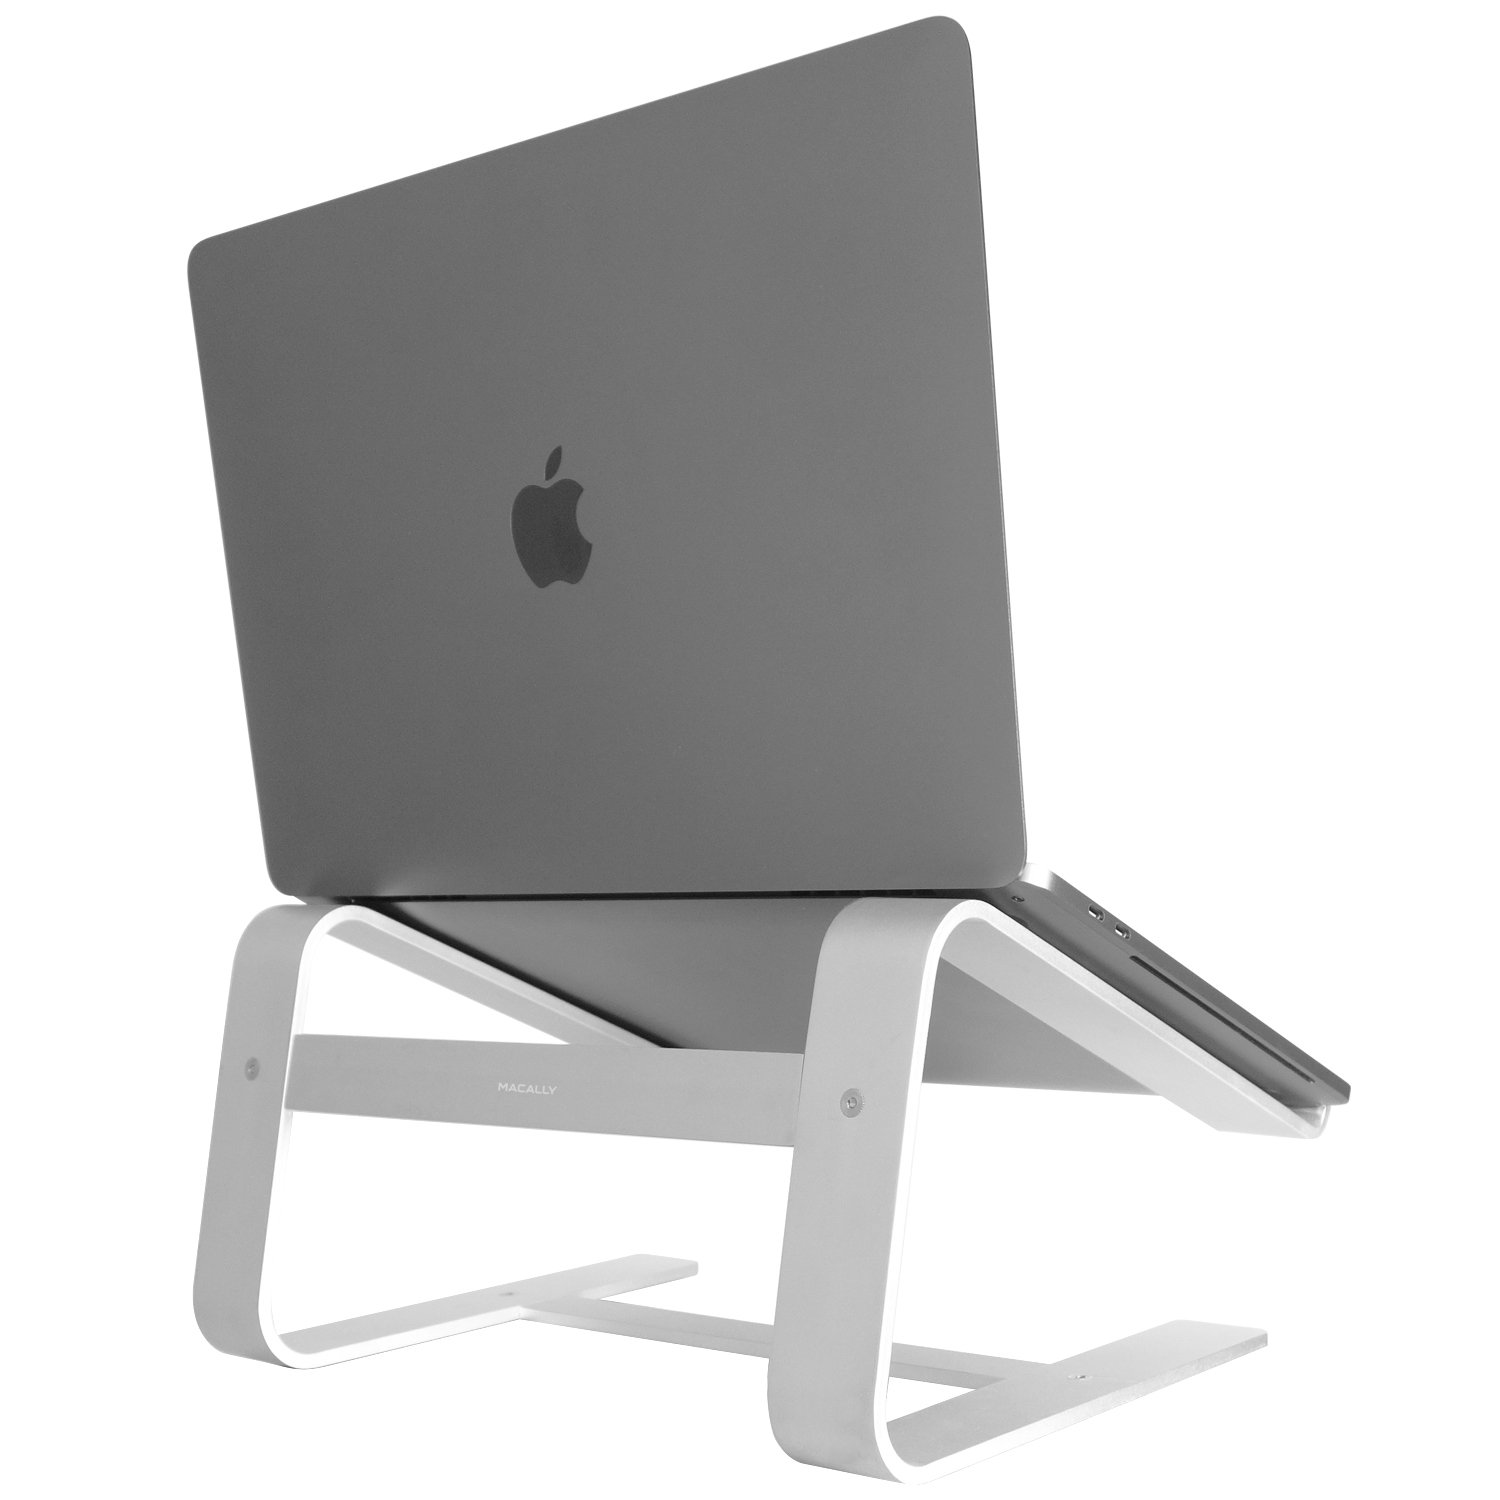 Macally Aluminum Laptop Stand for Desk & for All Apple MacBook 12'' / Pro/Air, Chromebook, Samsung, Acer, HP, Dell, Any Notebook Between 10'' to 17.3'' (ASTAND)